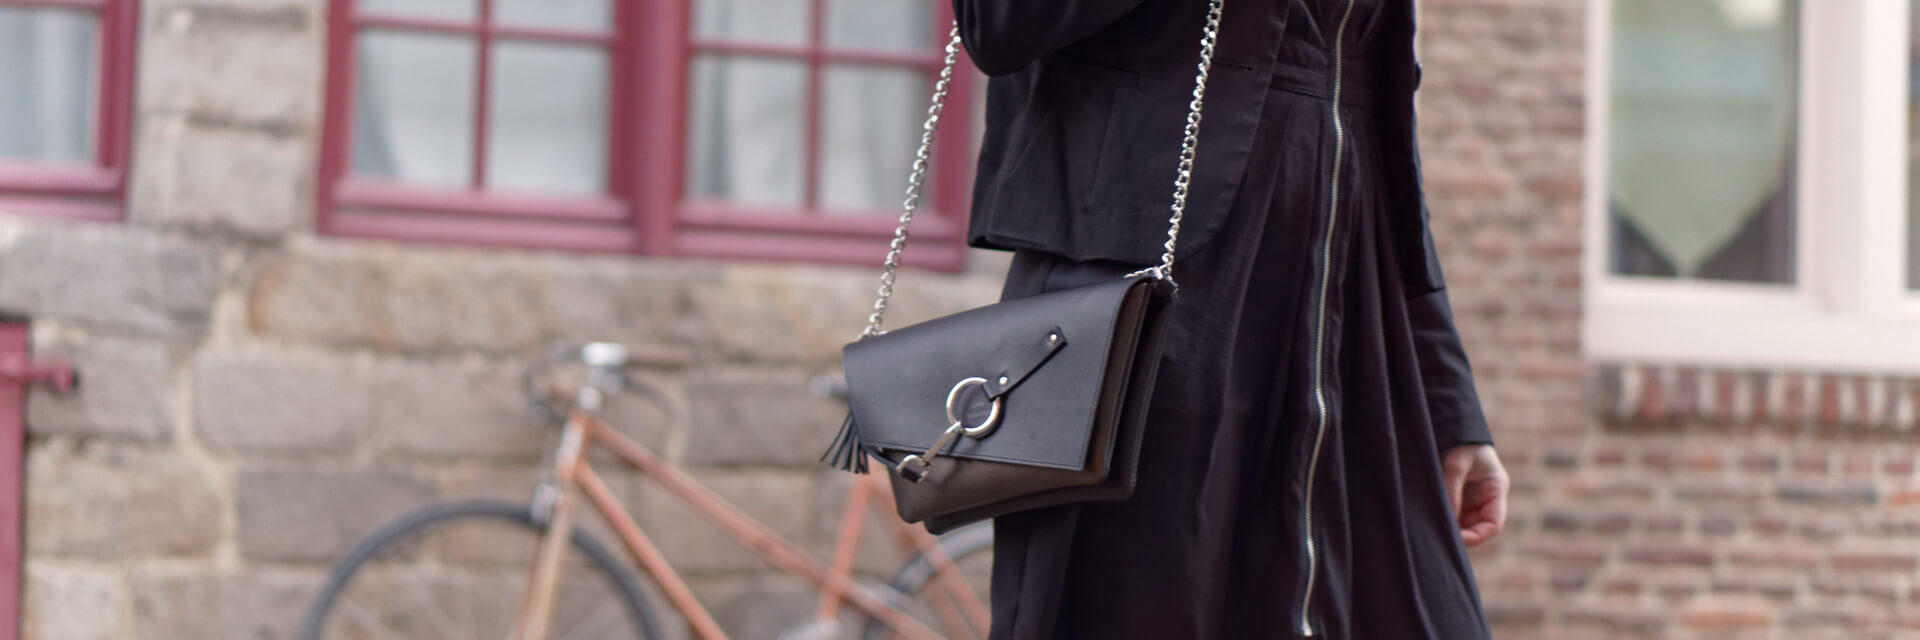 small leather handbag with a chain Lady Harberton